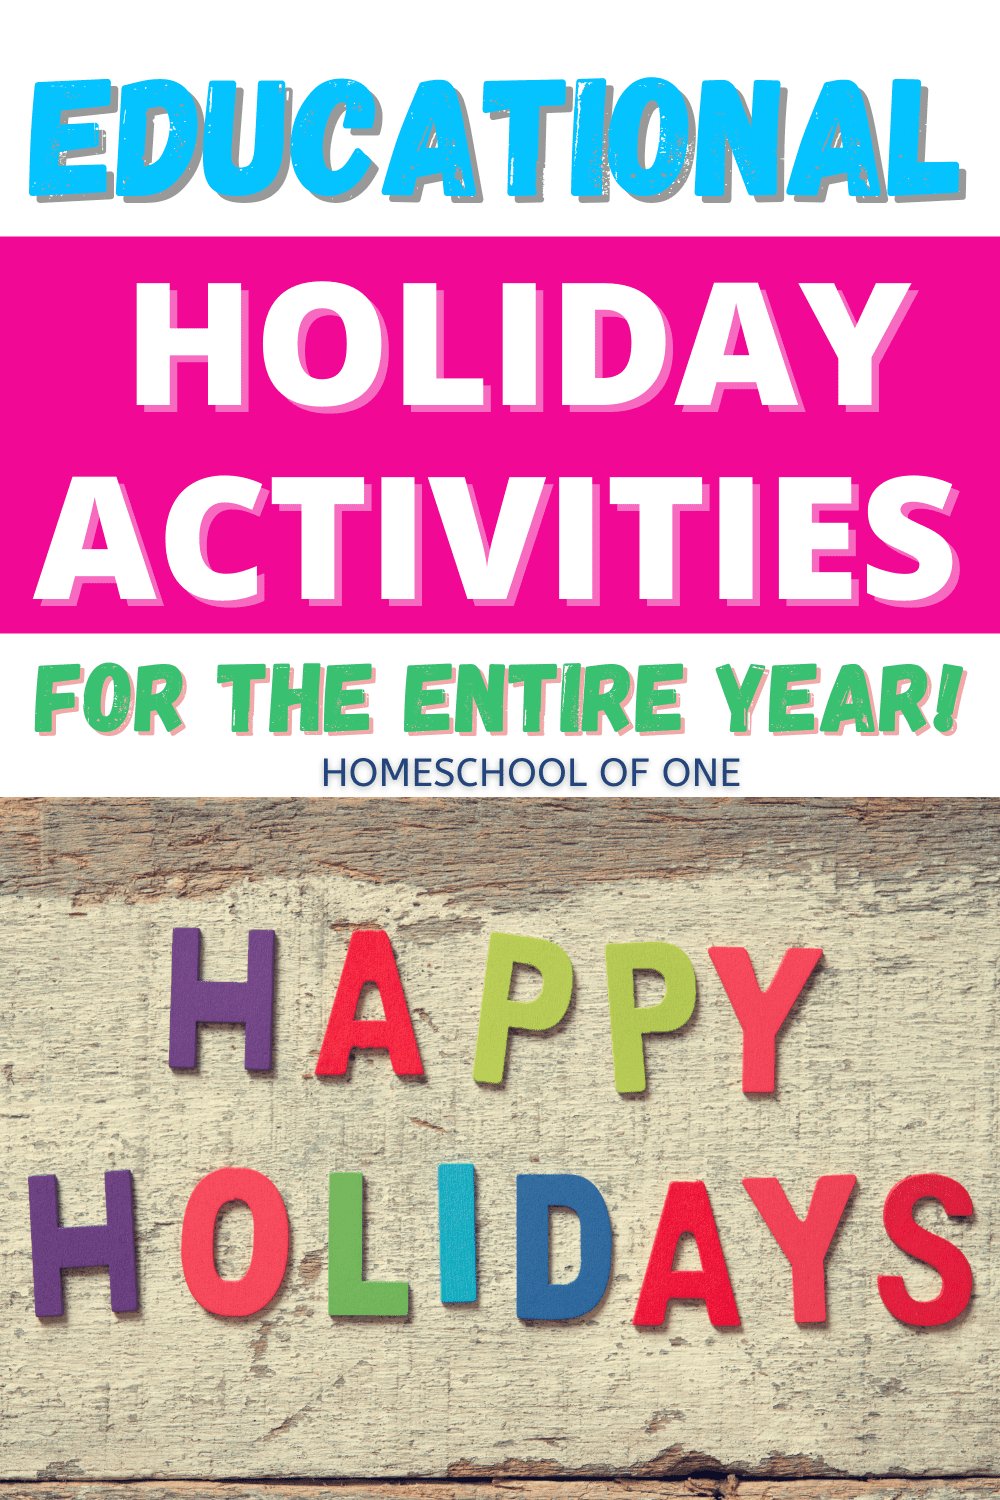 Holiday acctivities for the entire year for kids that are both educational and fun.